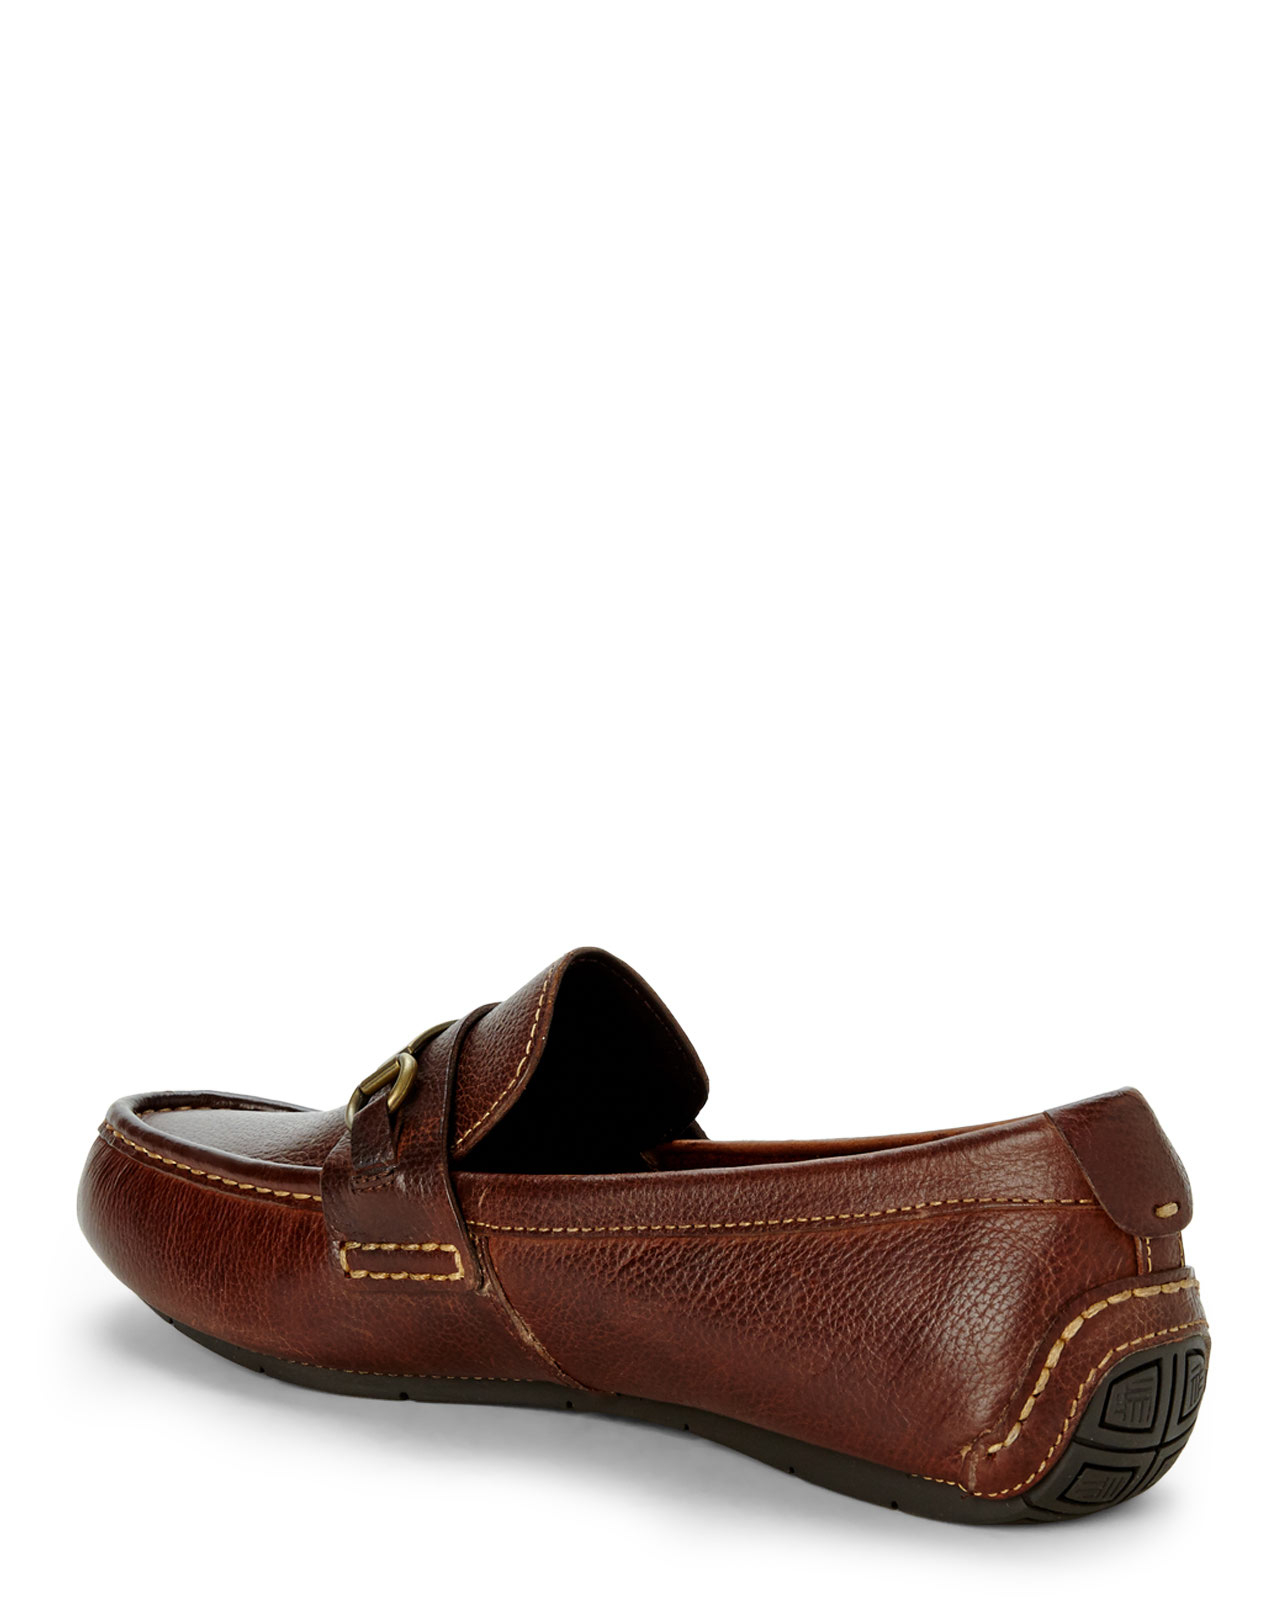 1bd77fe7977d81 Lyst - Cole Haan Brown Somerset Driver Shoes in Brown for Men